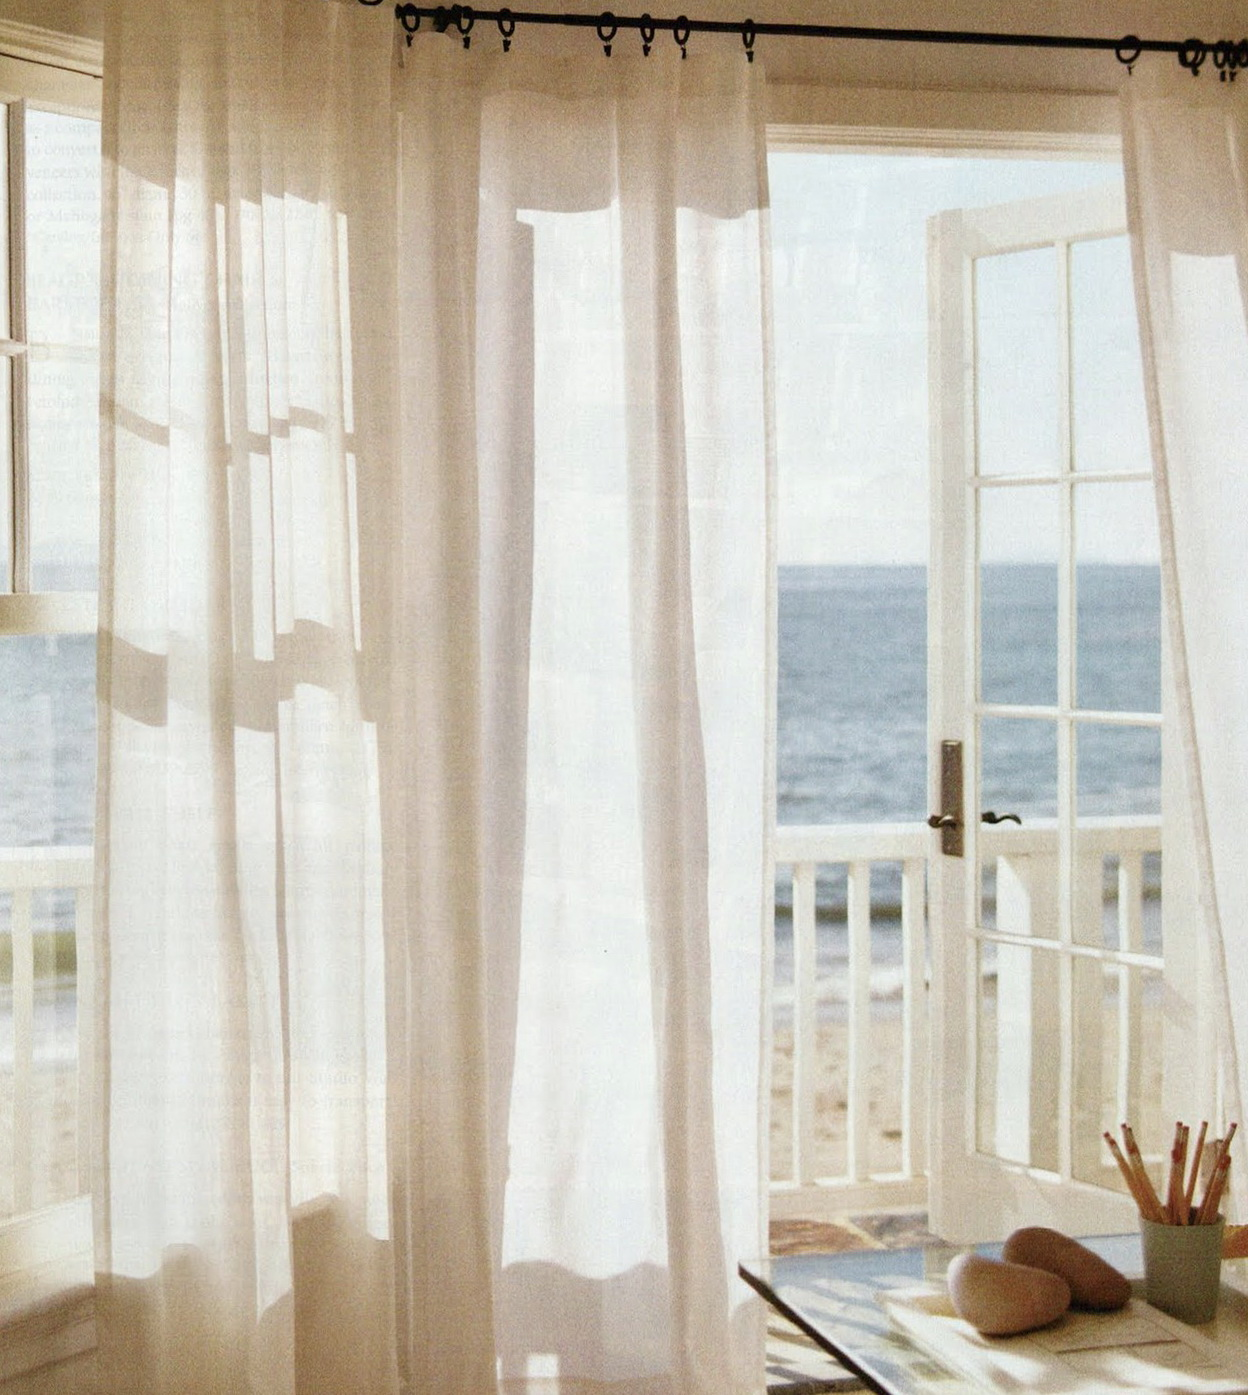 Curtains Over French Doors Home Design Ideas